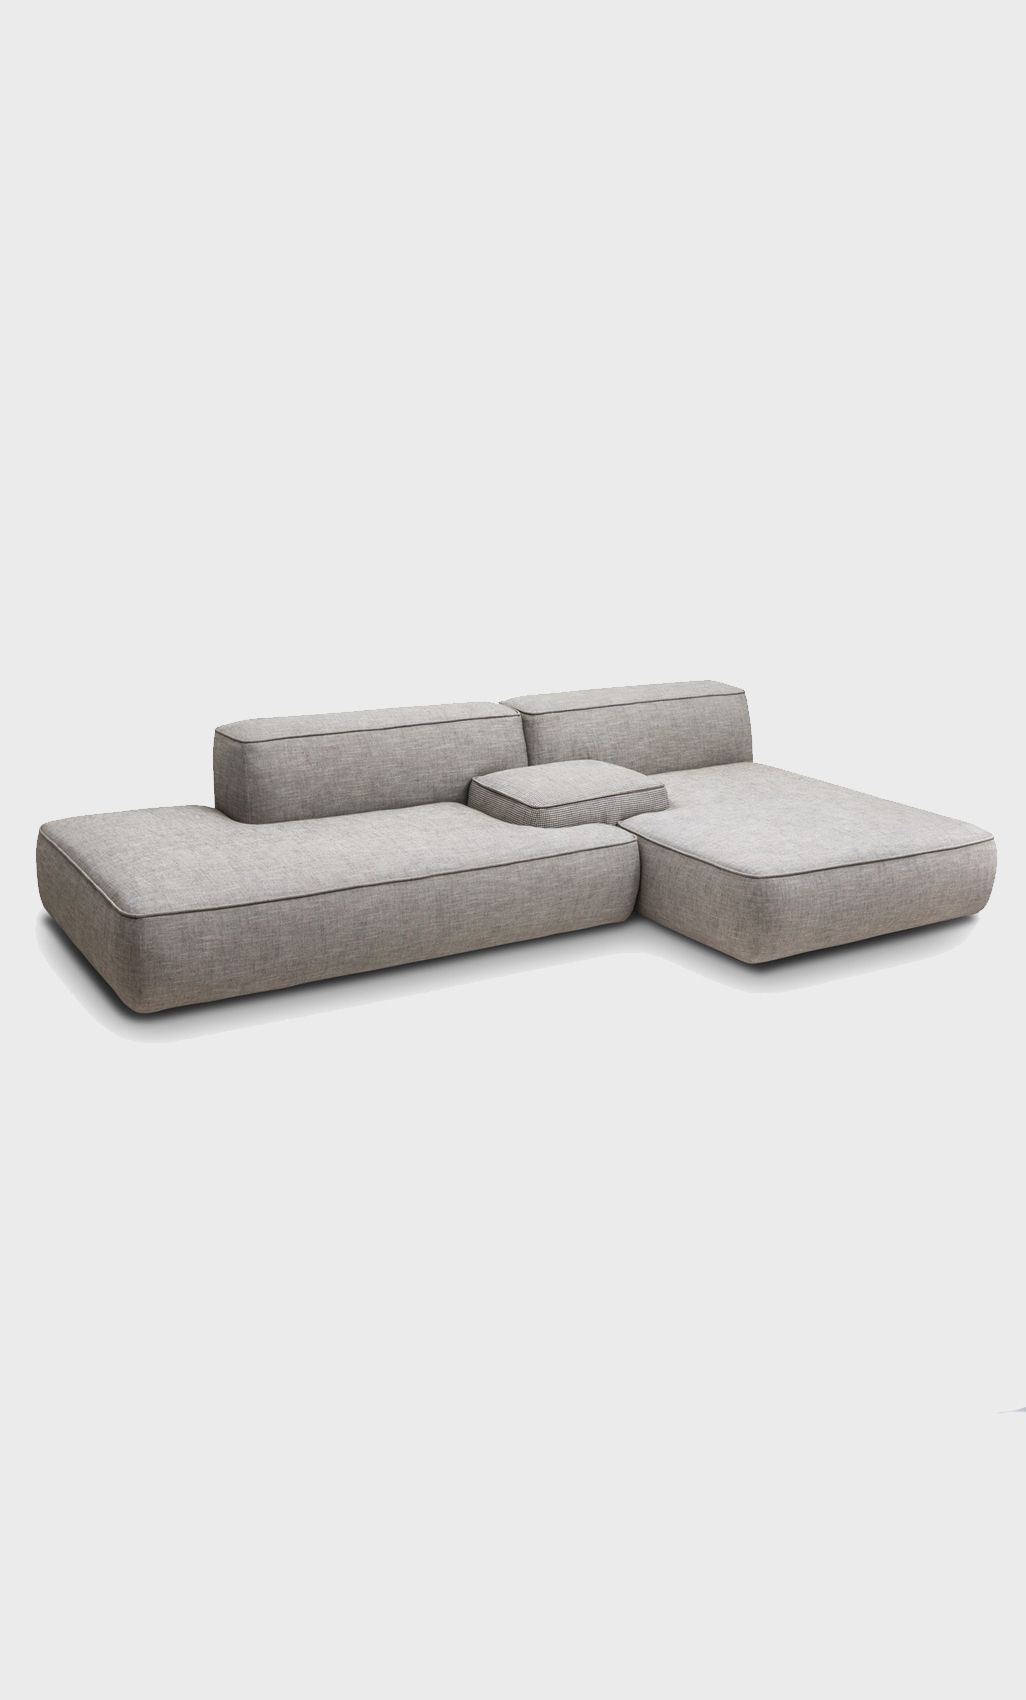 Modular Sofa: No Legs Or Really Small Low Legs | Furniture 2 Within Low Sofas (View 4 of 10)